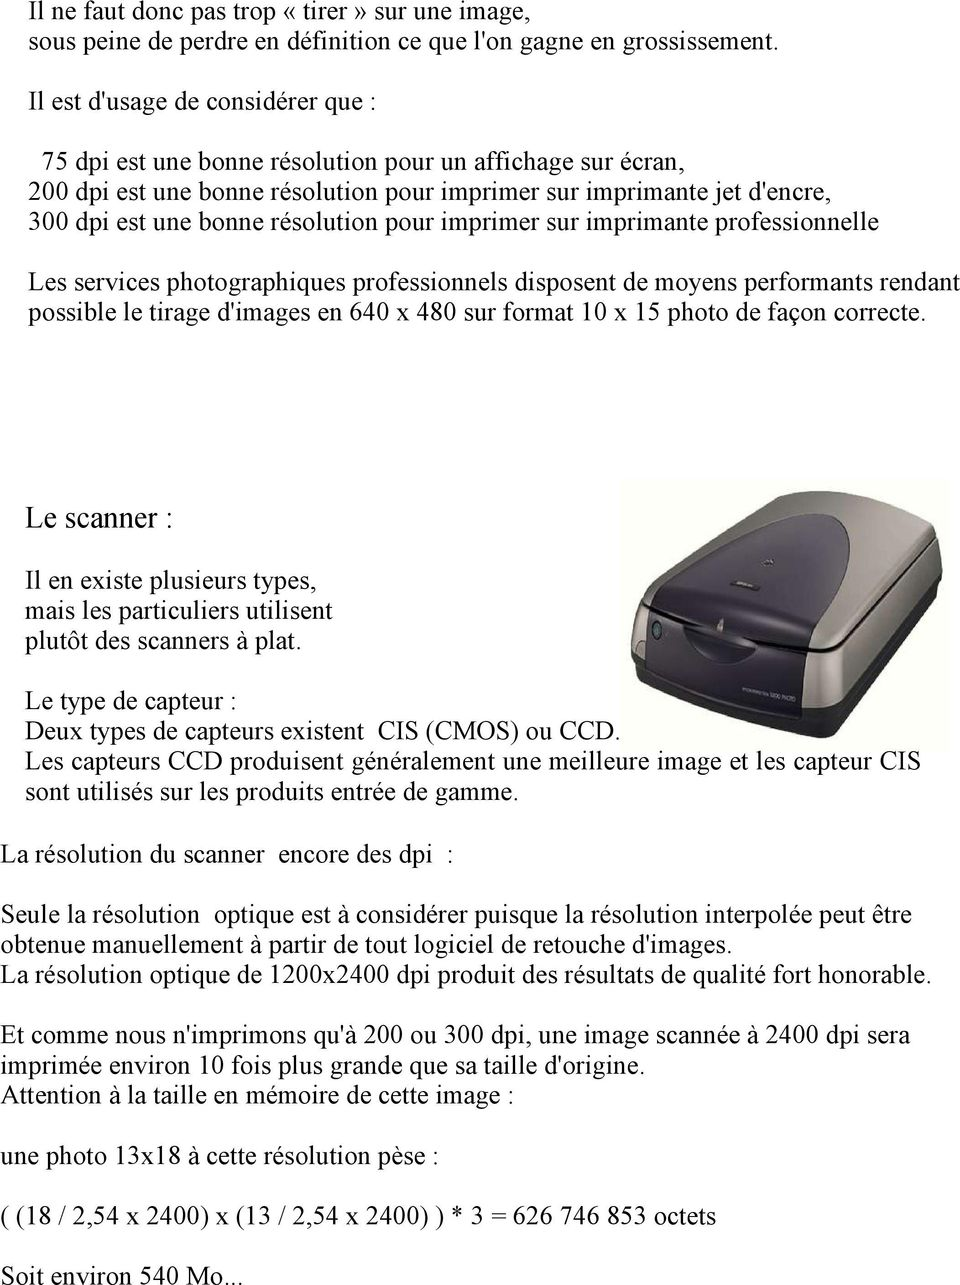 résolution pour imprimer sur imprimante professionnelle Les services photographiques professionnels disposent de moyens performants rendant possible le tirage d'images en 640 x 480 sur format 10 x 15